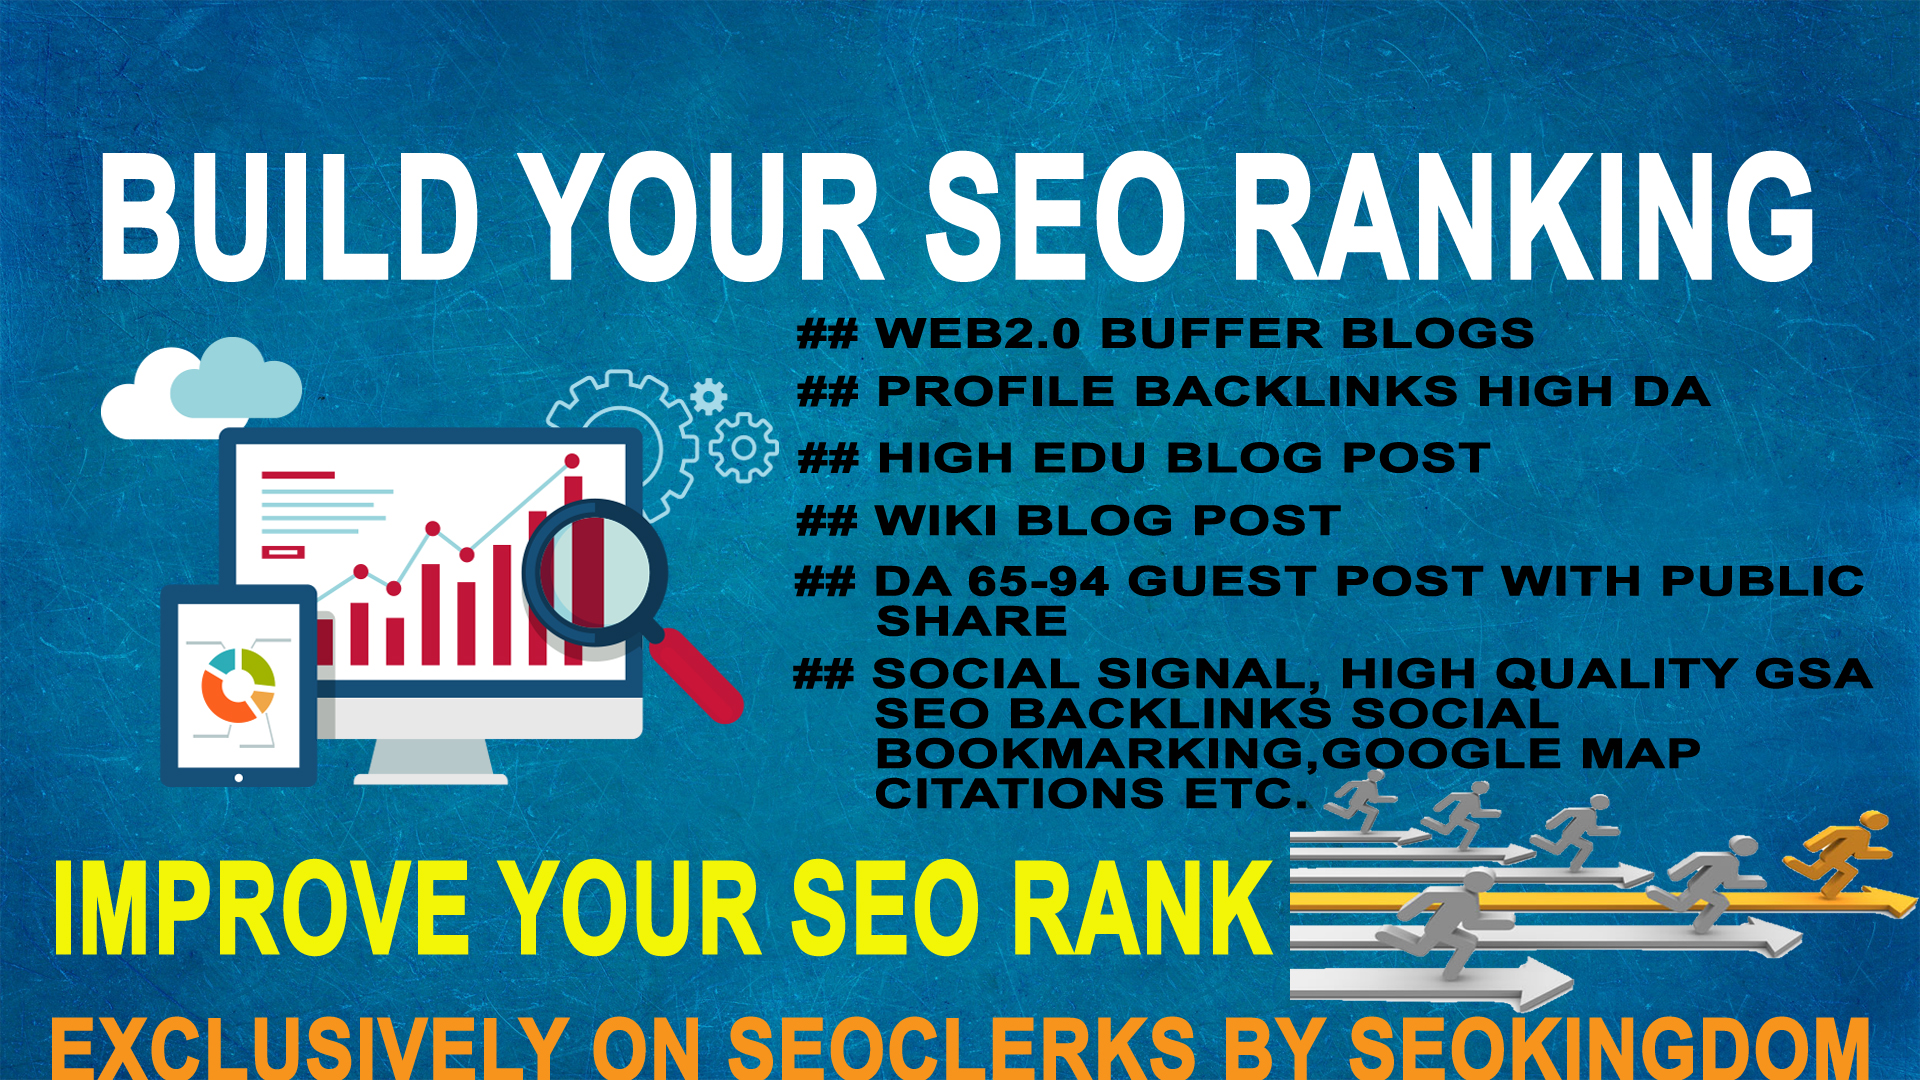 Build Your SEO Ranking With My High Authority Backlin...